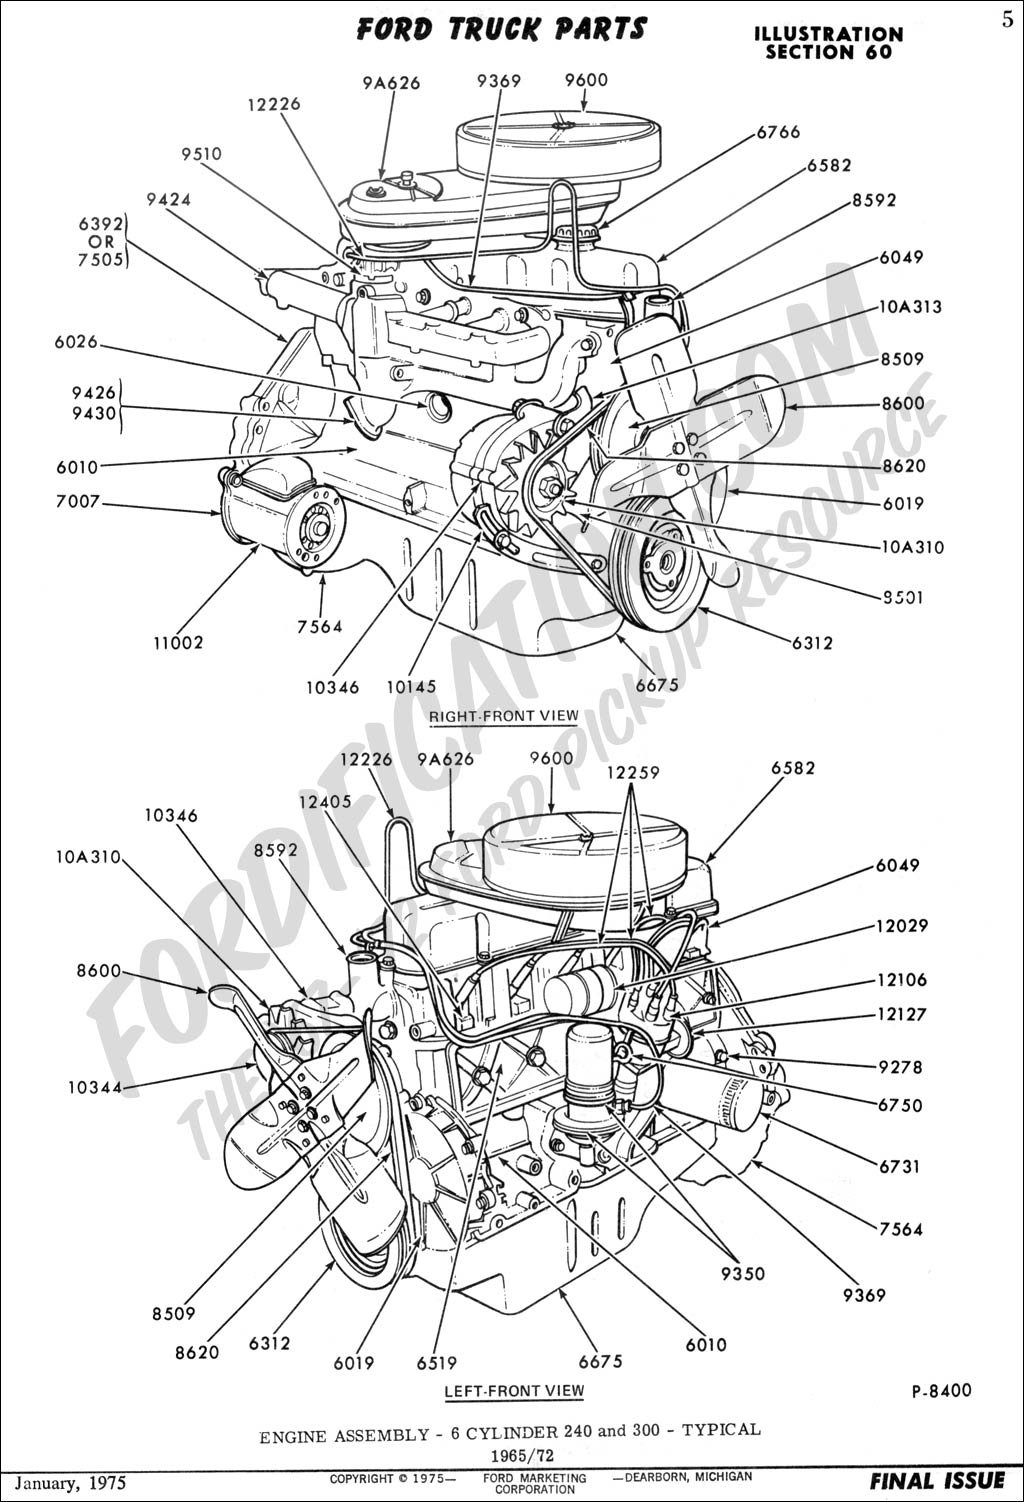 [WRG-5568] 1970 Ford 302 Engine Parts Diagram